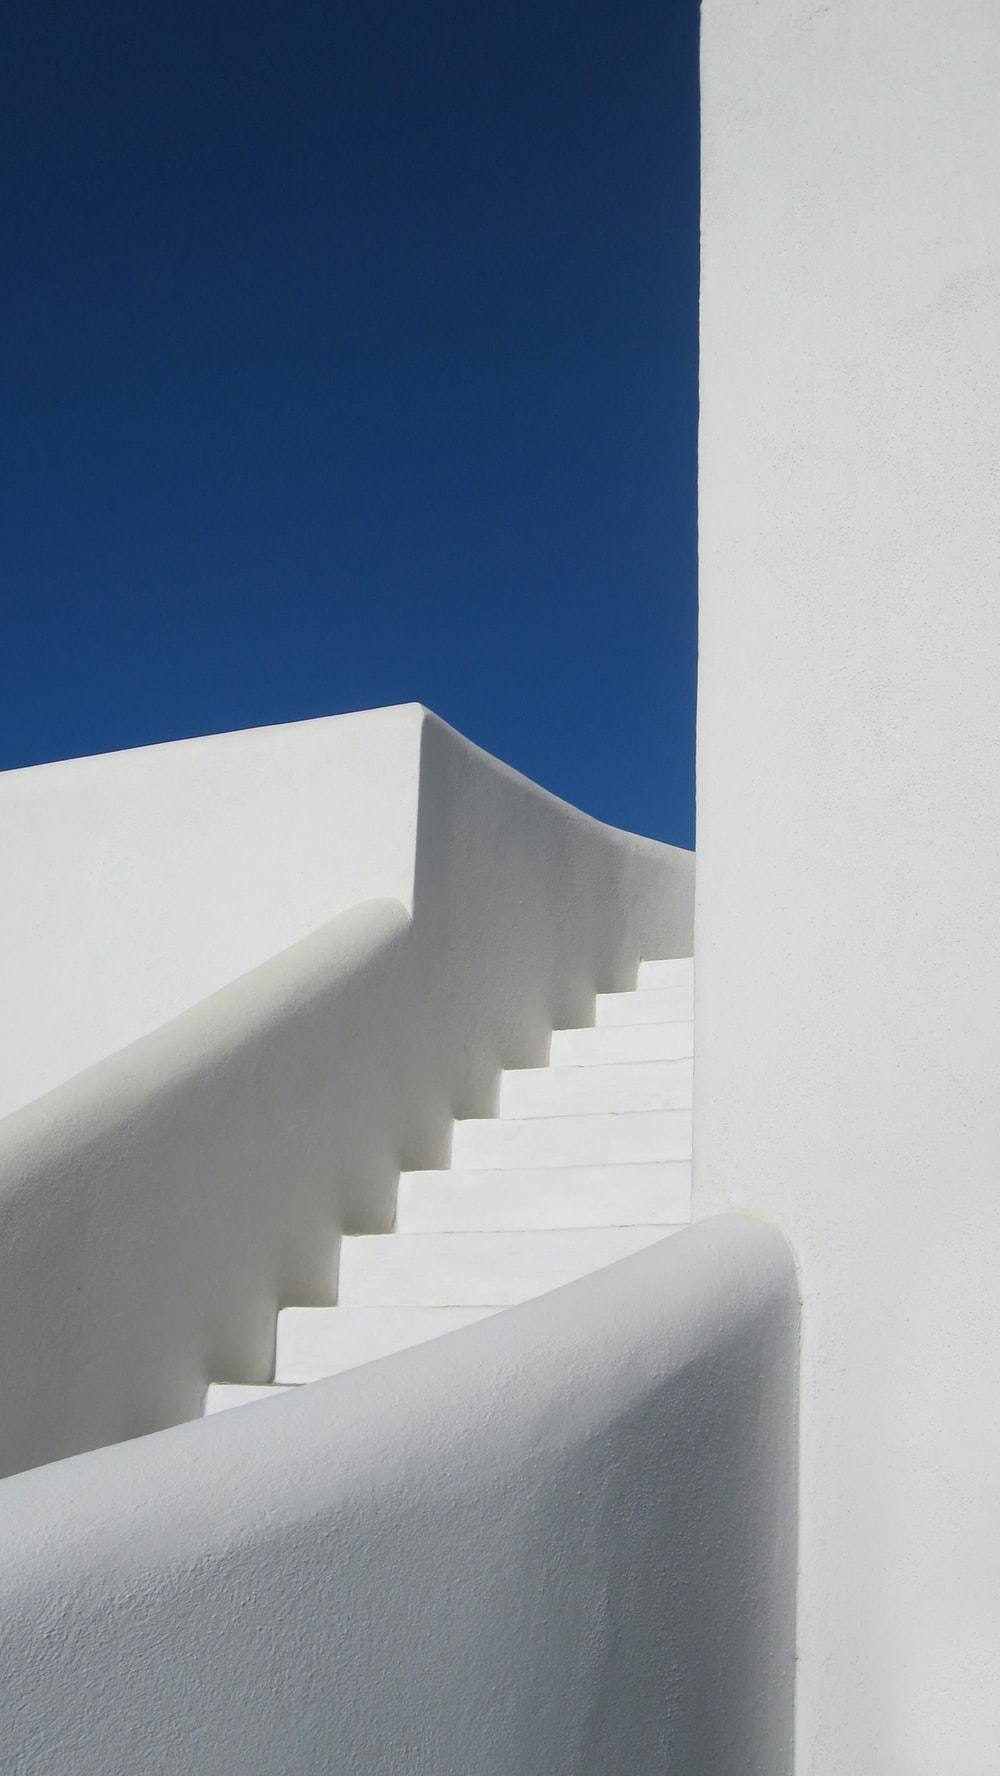 white concrete staircase under blue sky during daytime